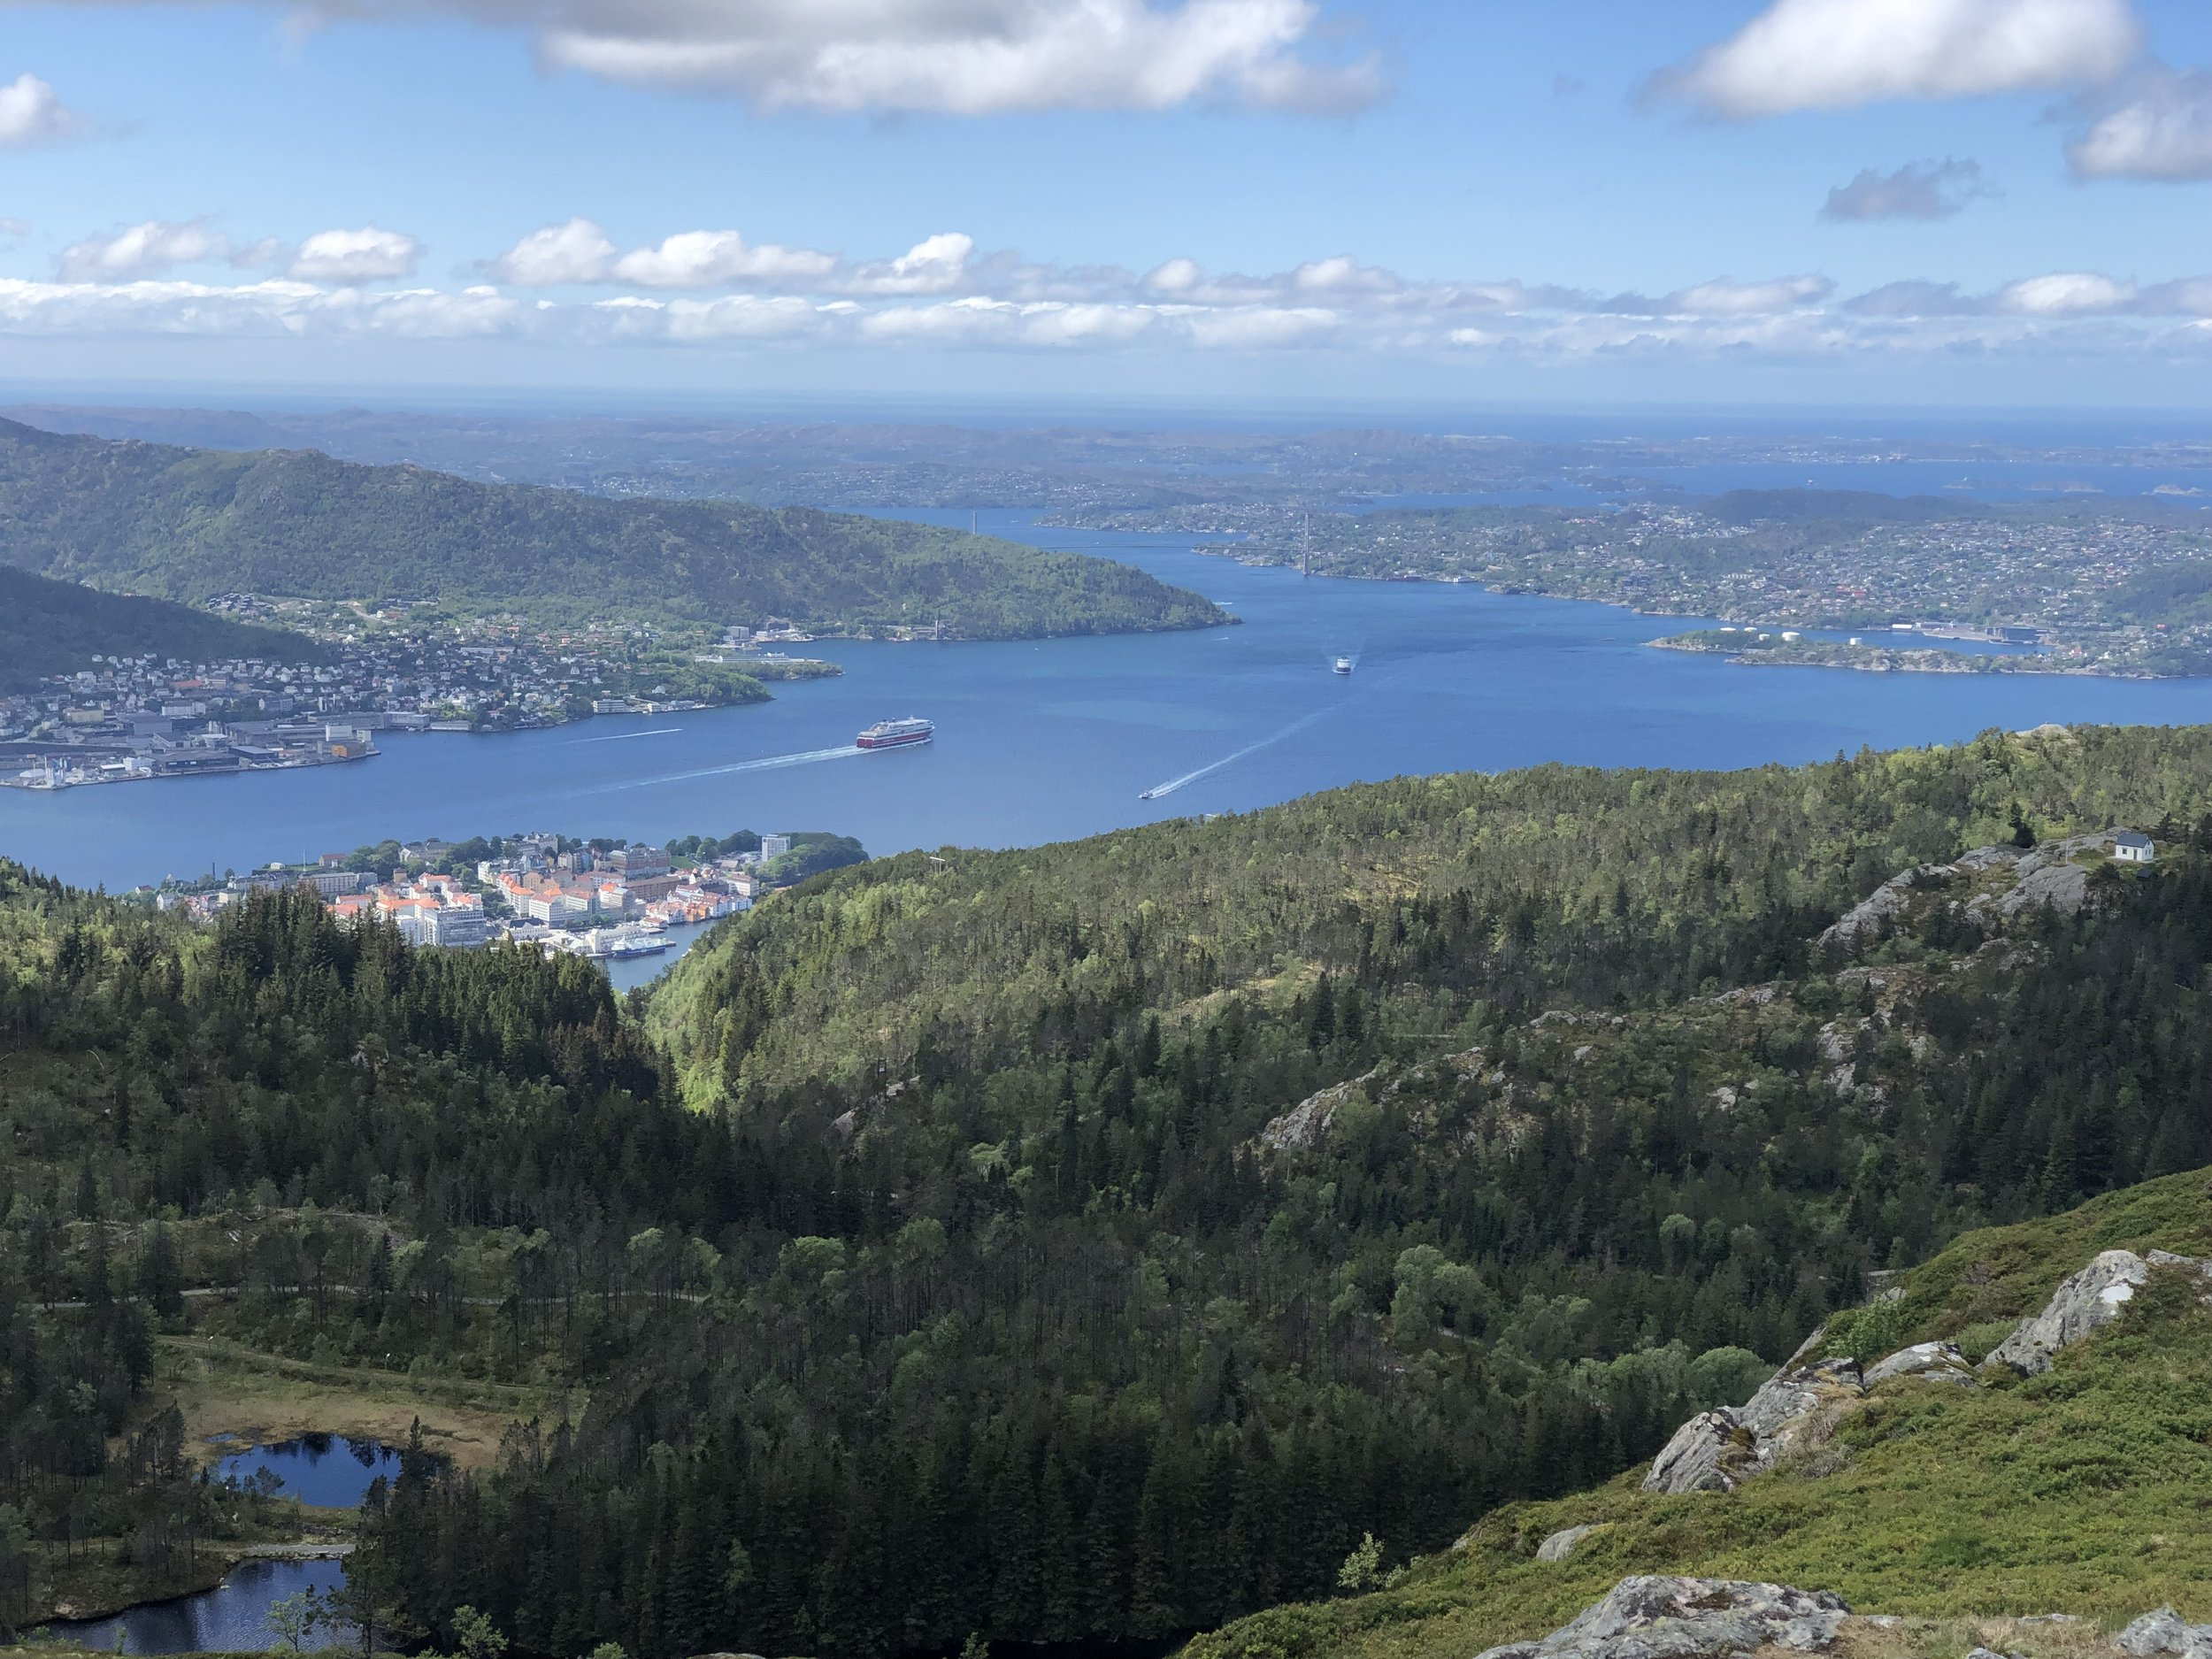 I took a hike around a mountain overlooking the city where I came upon this view of Bergen and the fjord.